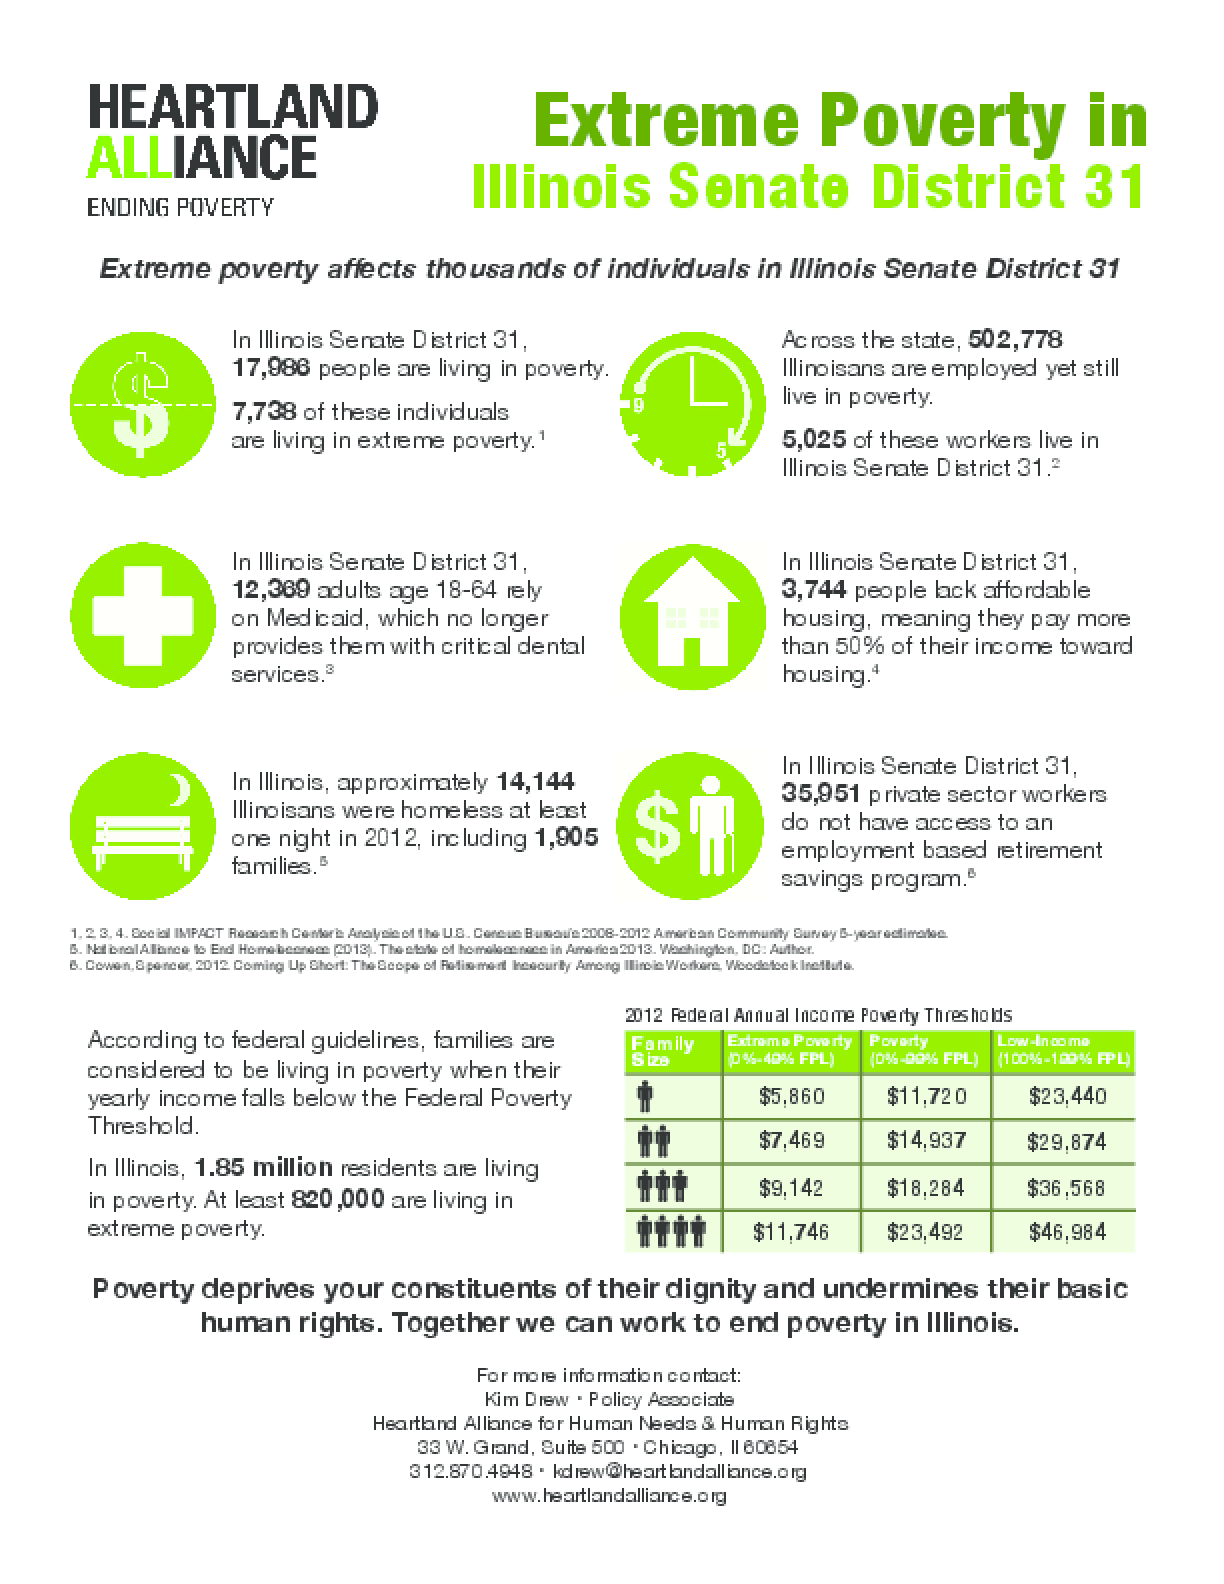 Poverty Fact Sheet for Illinois Senate District 31